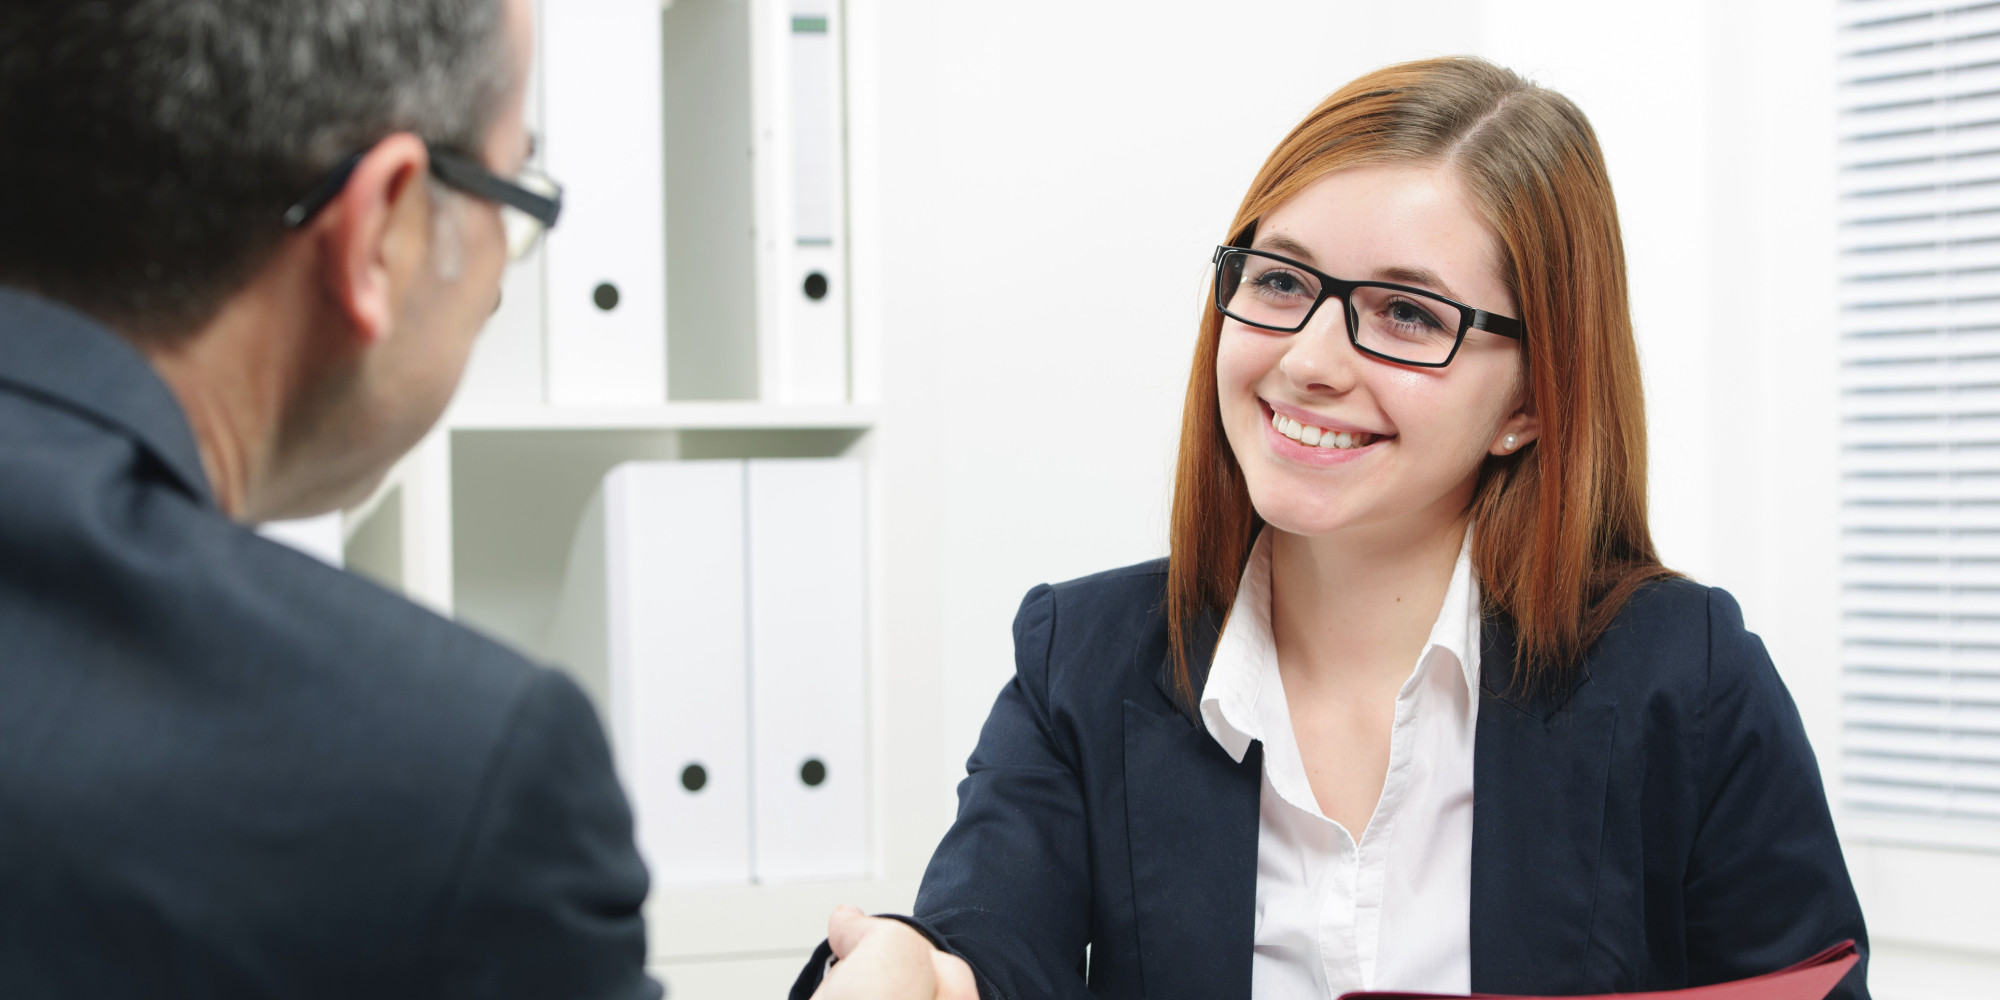 the 5 basic interview questions job applicants need to